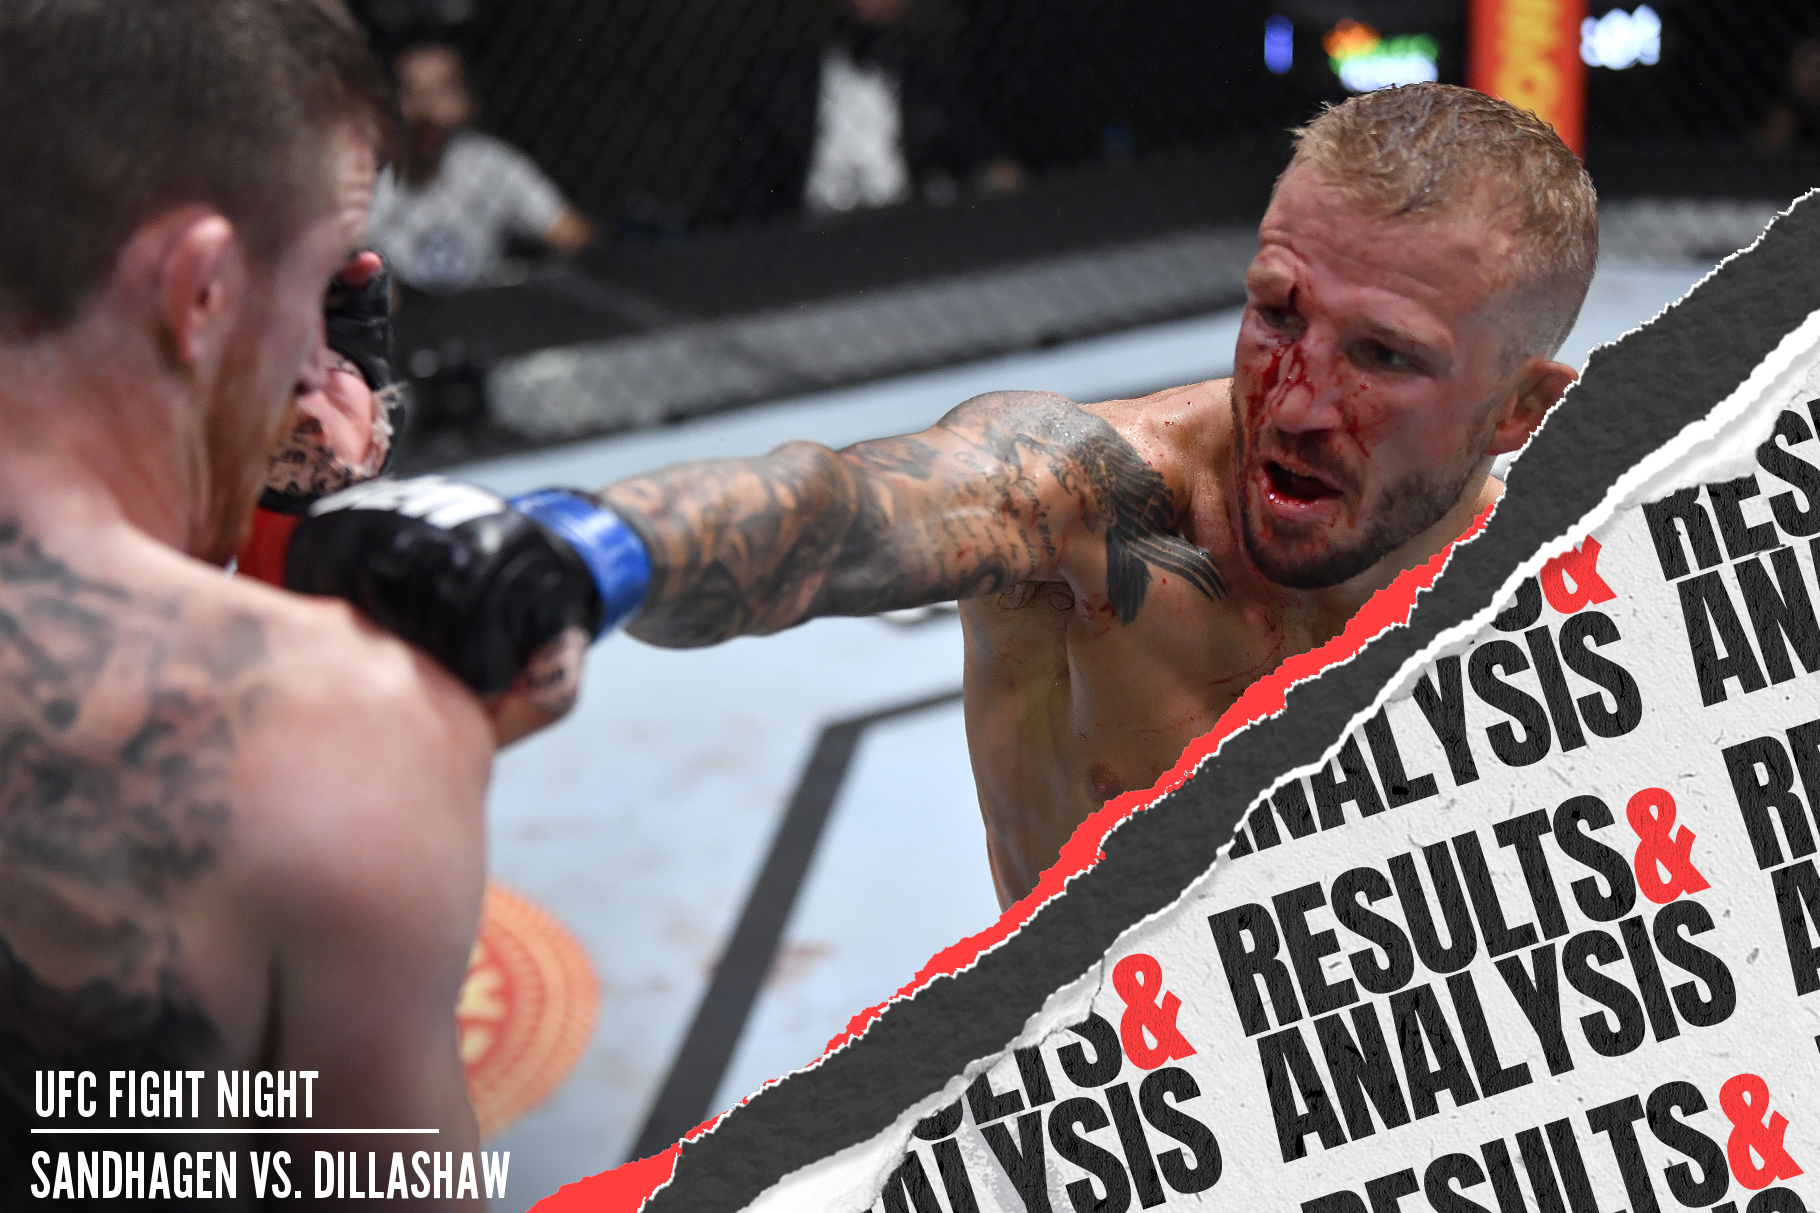 TJ Dillashaw punches Cory Sandhagen in the UFC Vegas 32 main event.